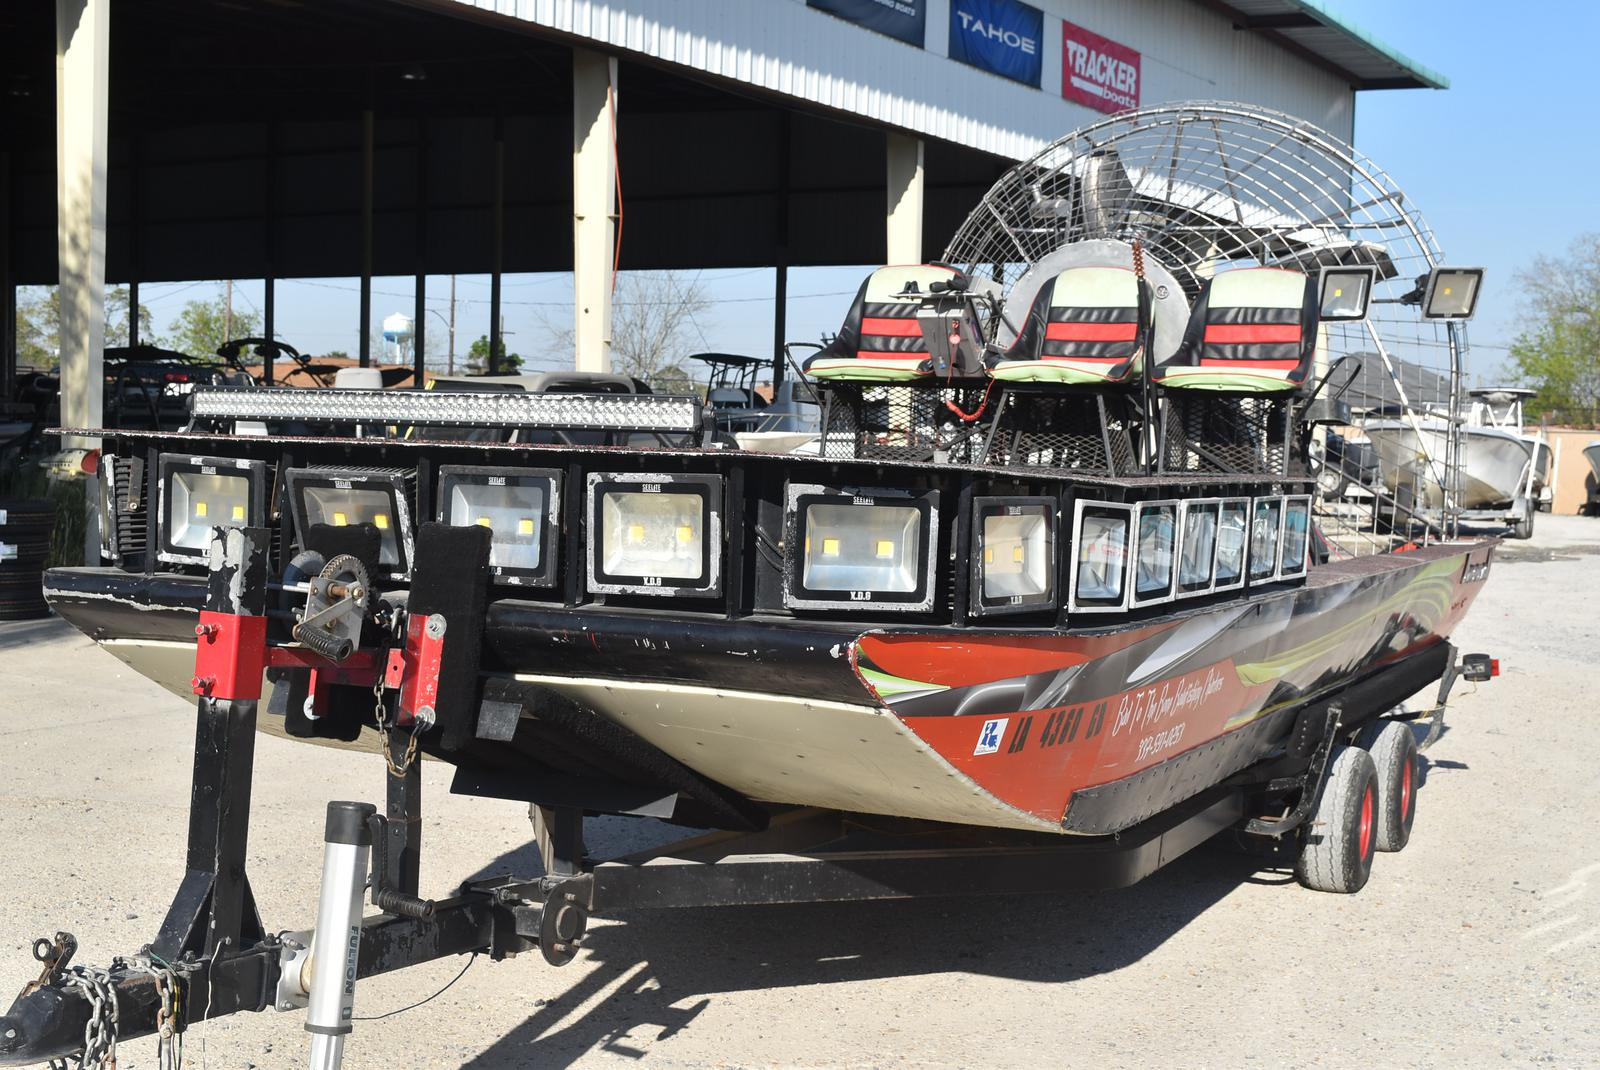 2016 Diamondback boat for sale, model of the boat is Trailboss 20 & Image # 24 of 35